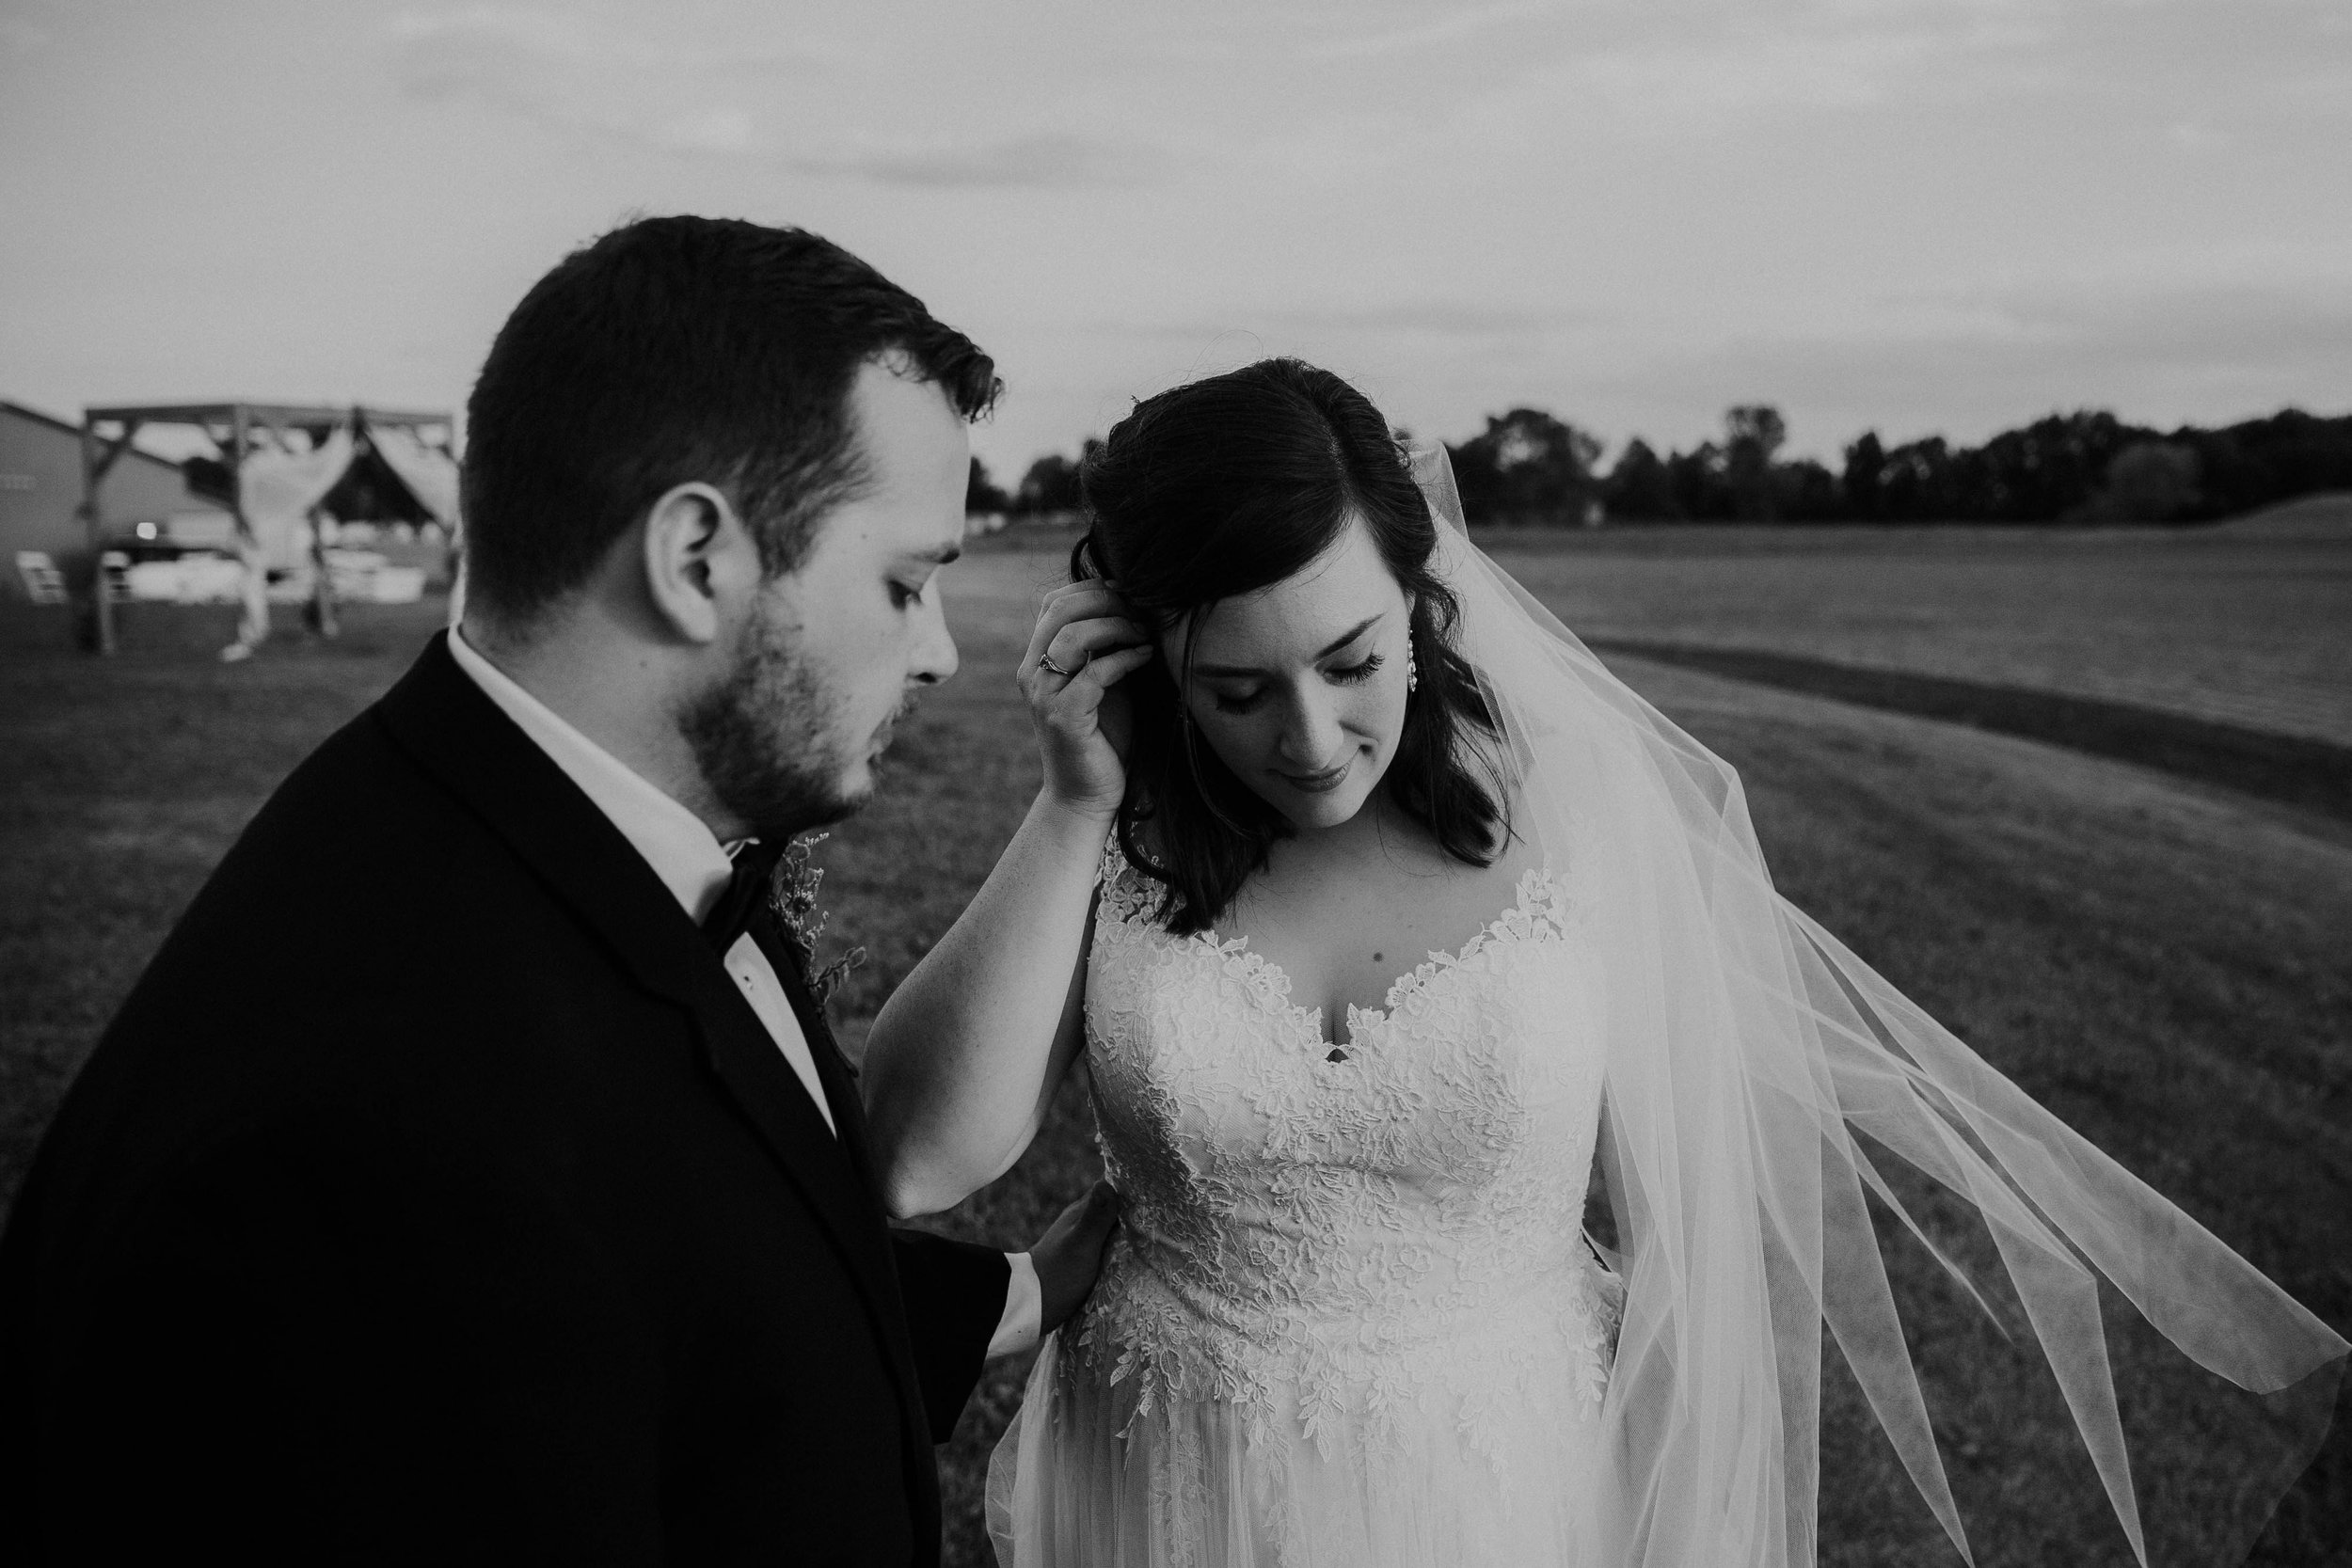 columbus ohio wedding photographer grace e jones photography43.jpg